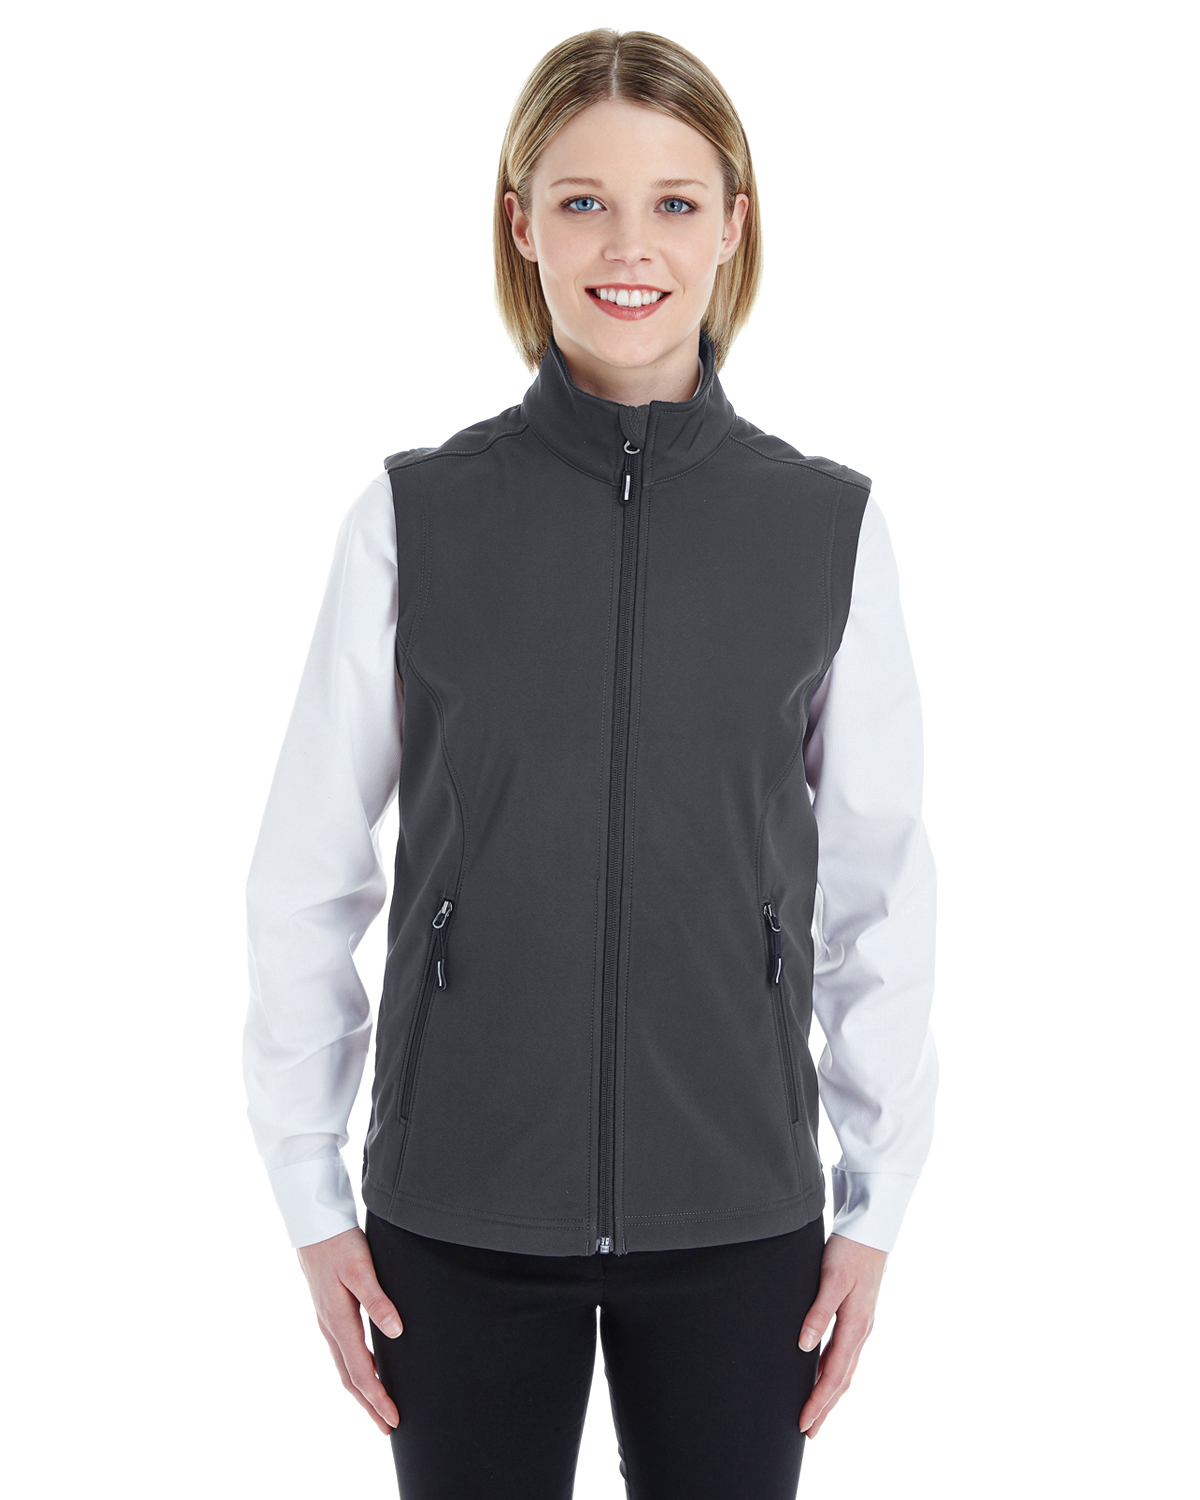 Ash City CE701W - Ladies' Cruise Two-Layer Fleece Bonded ...